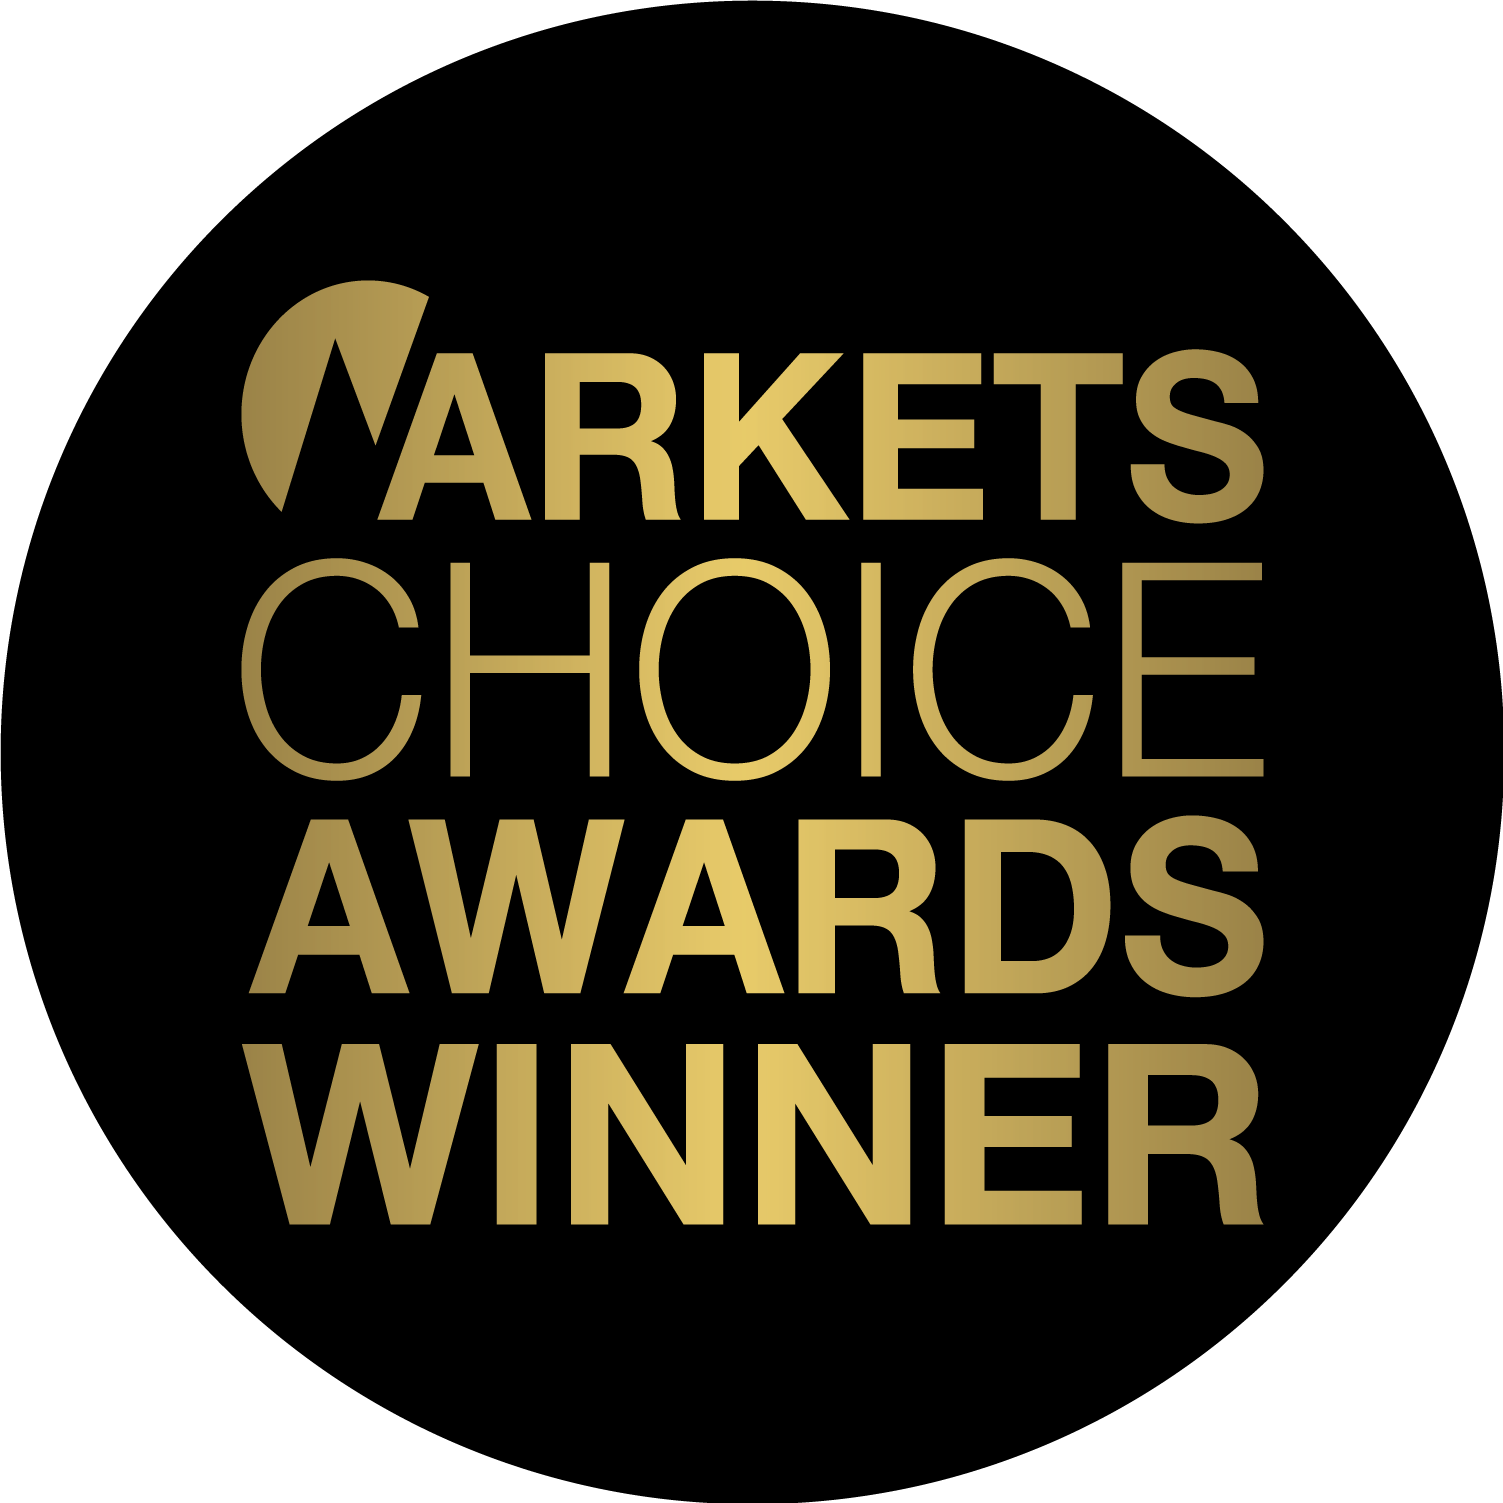 Markets Choice Awards Winner